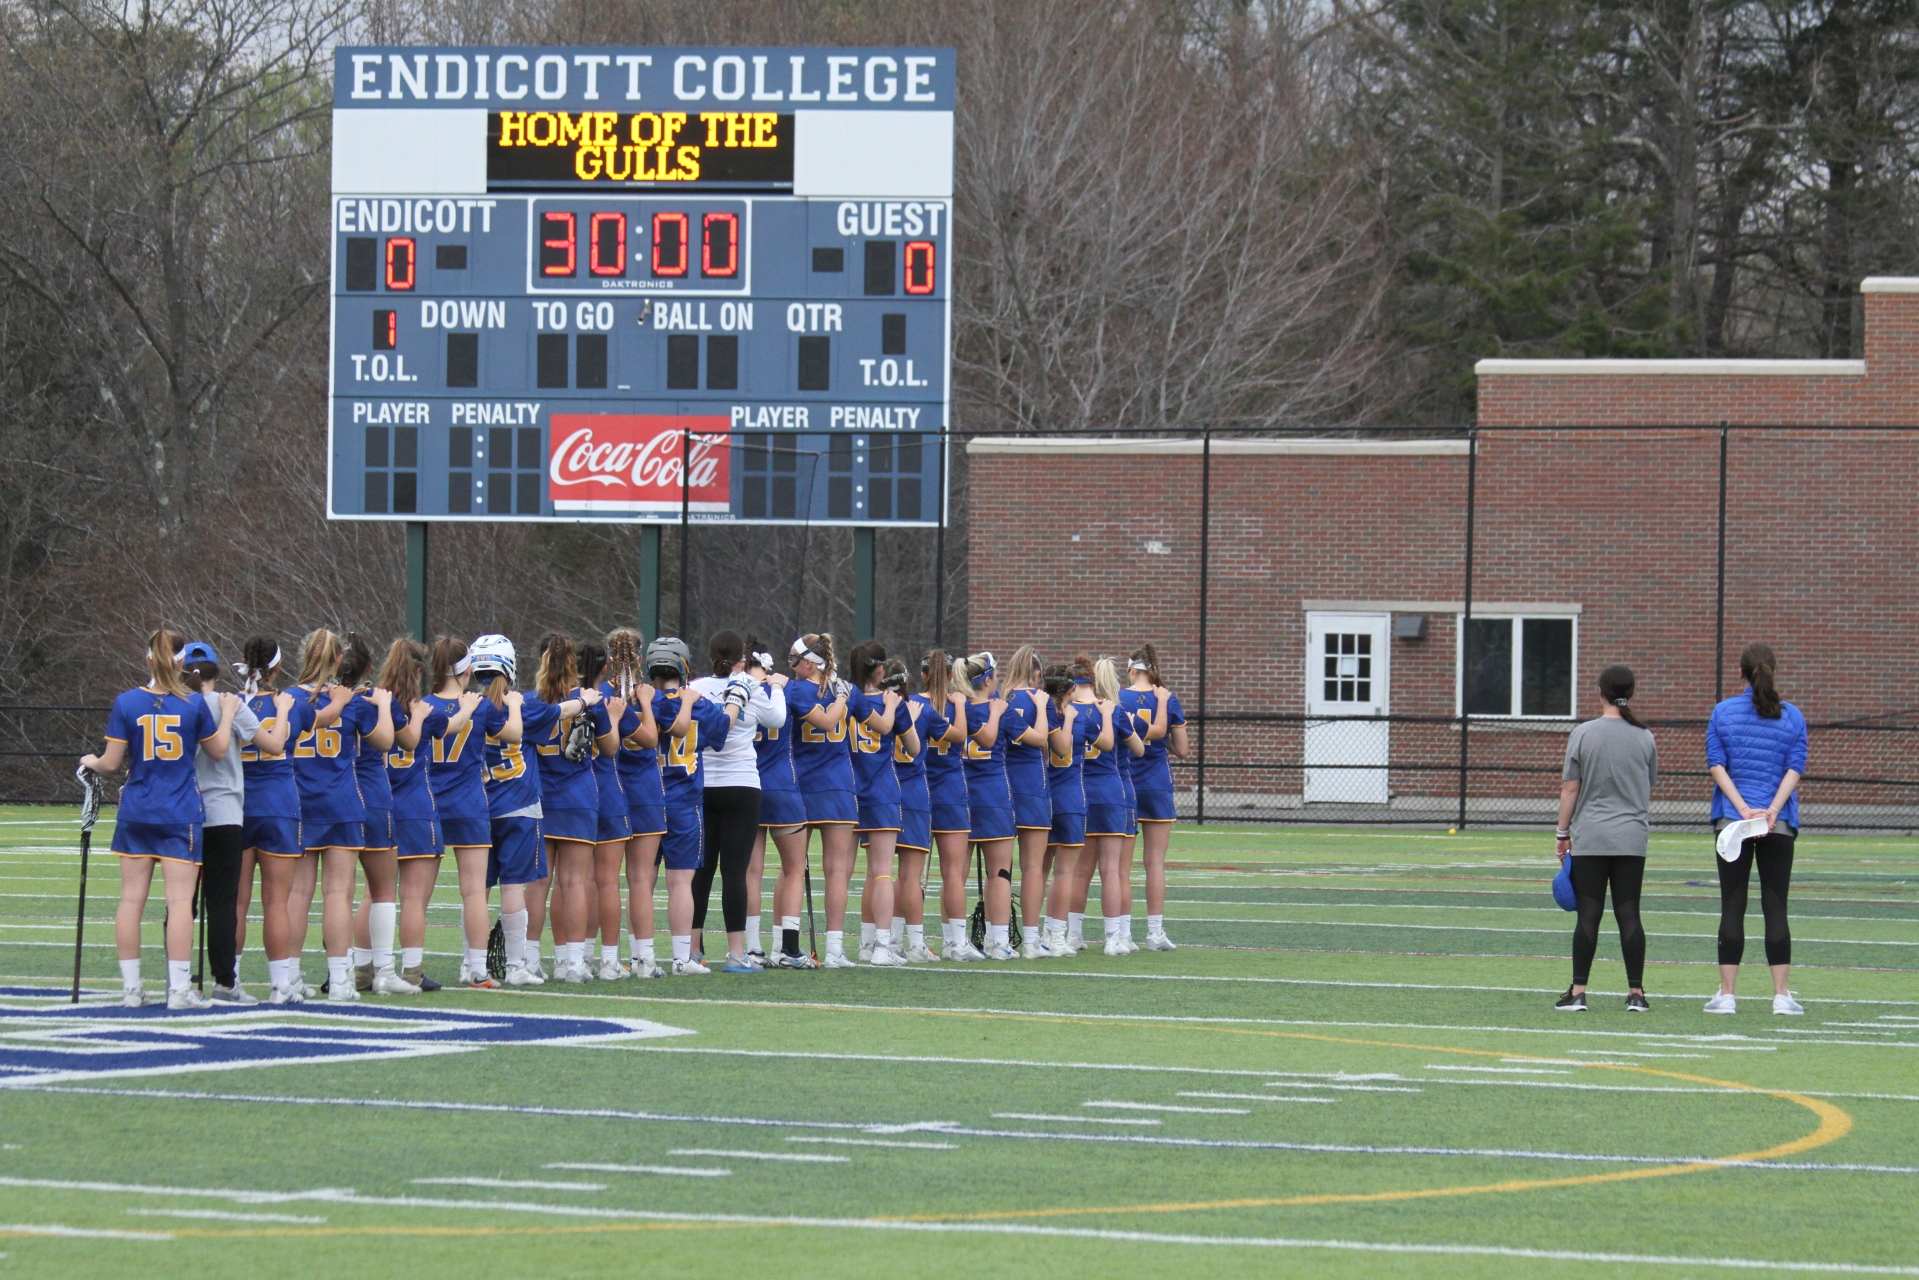 Roger Williams University vs. Endicott College 2018 CCC Women's Lacrosse Championship - 3